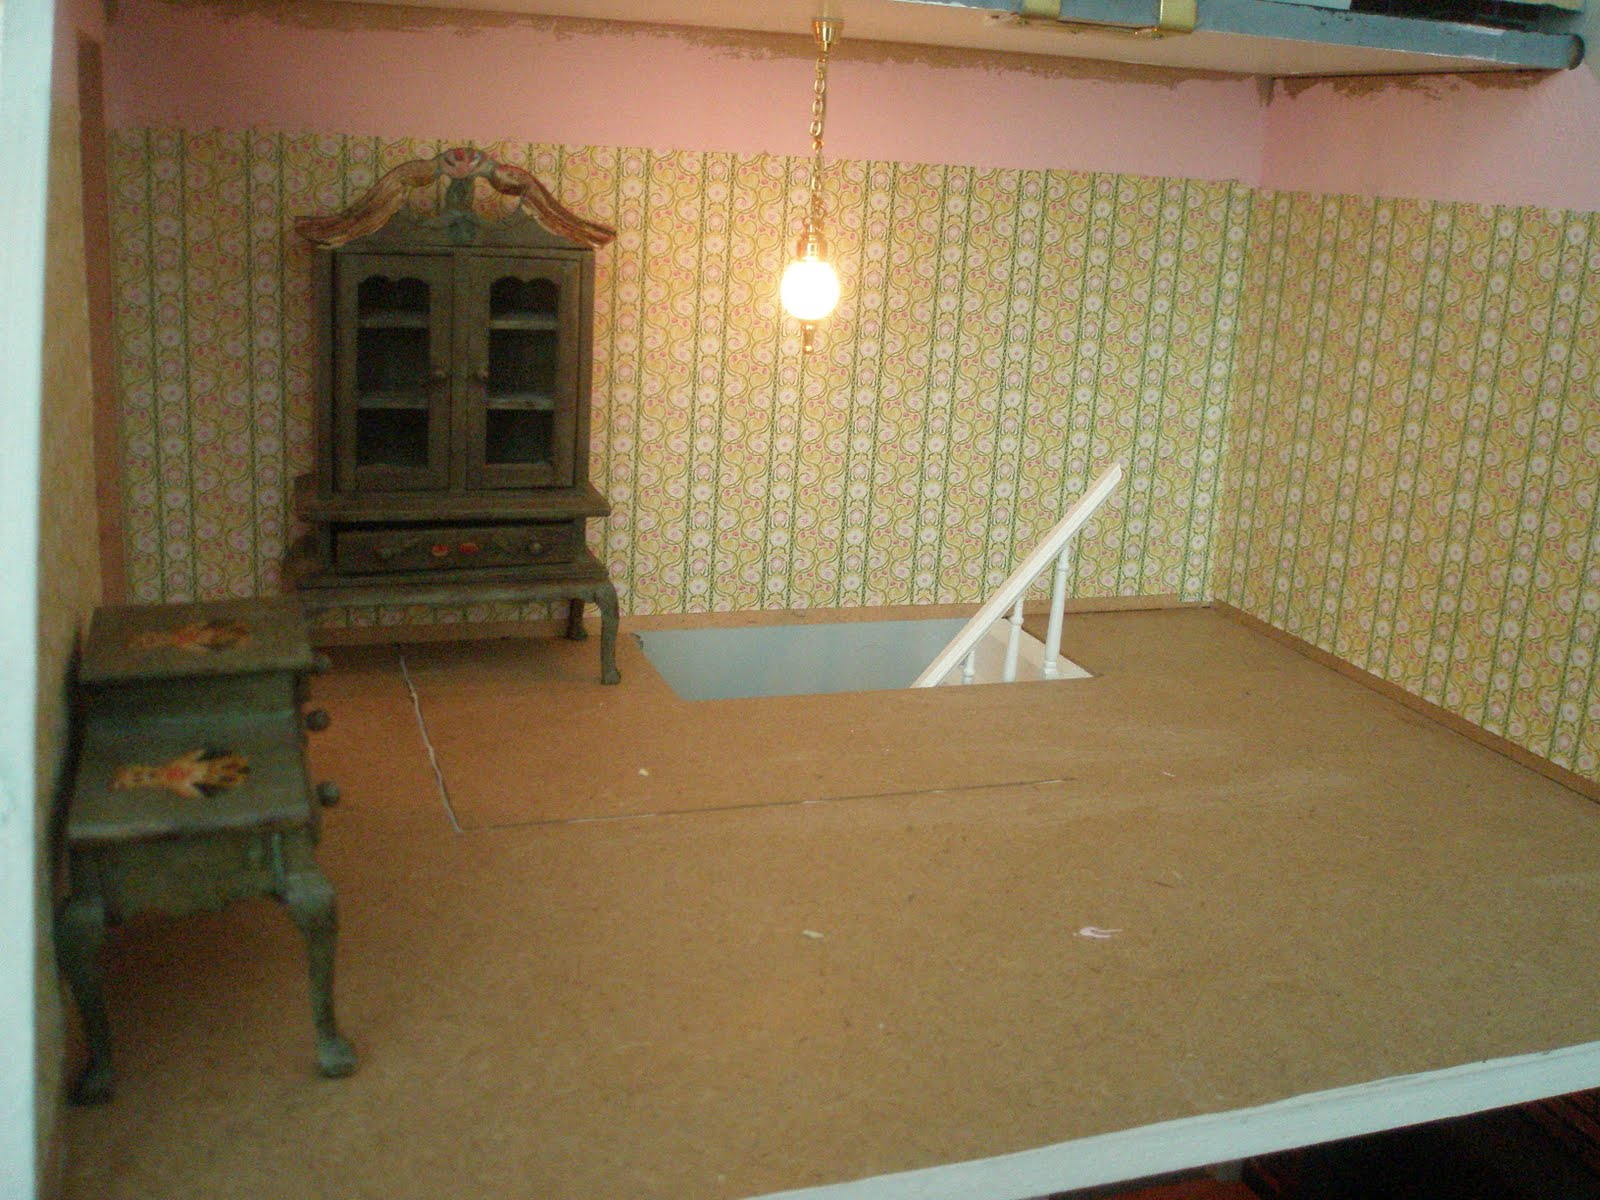 dolls house wallpaper bedroom - photo #37